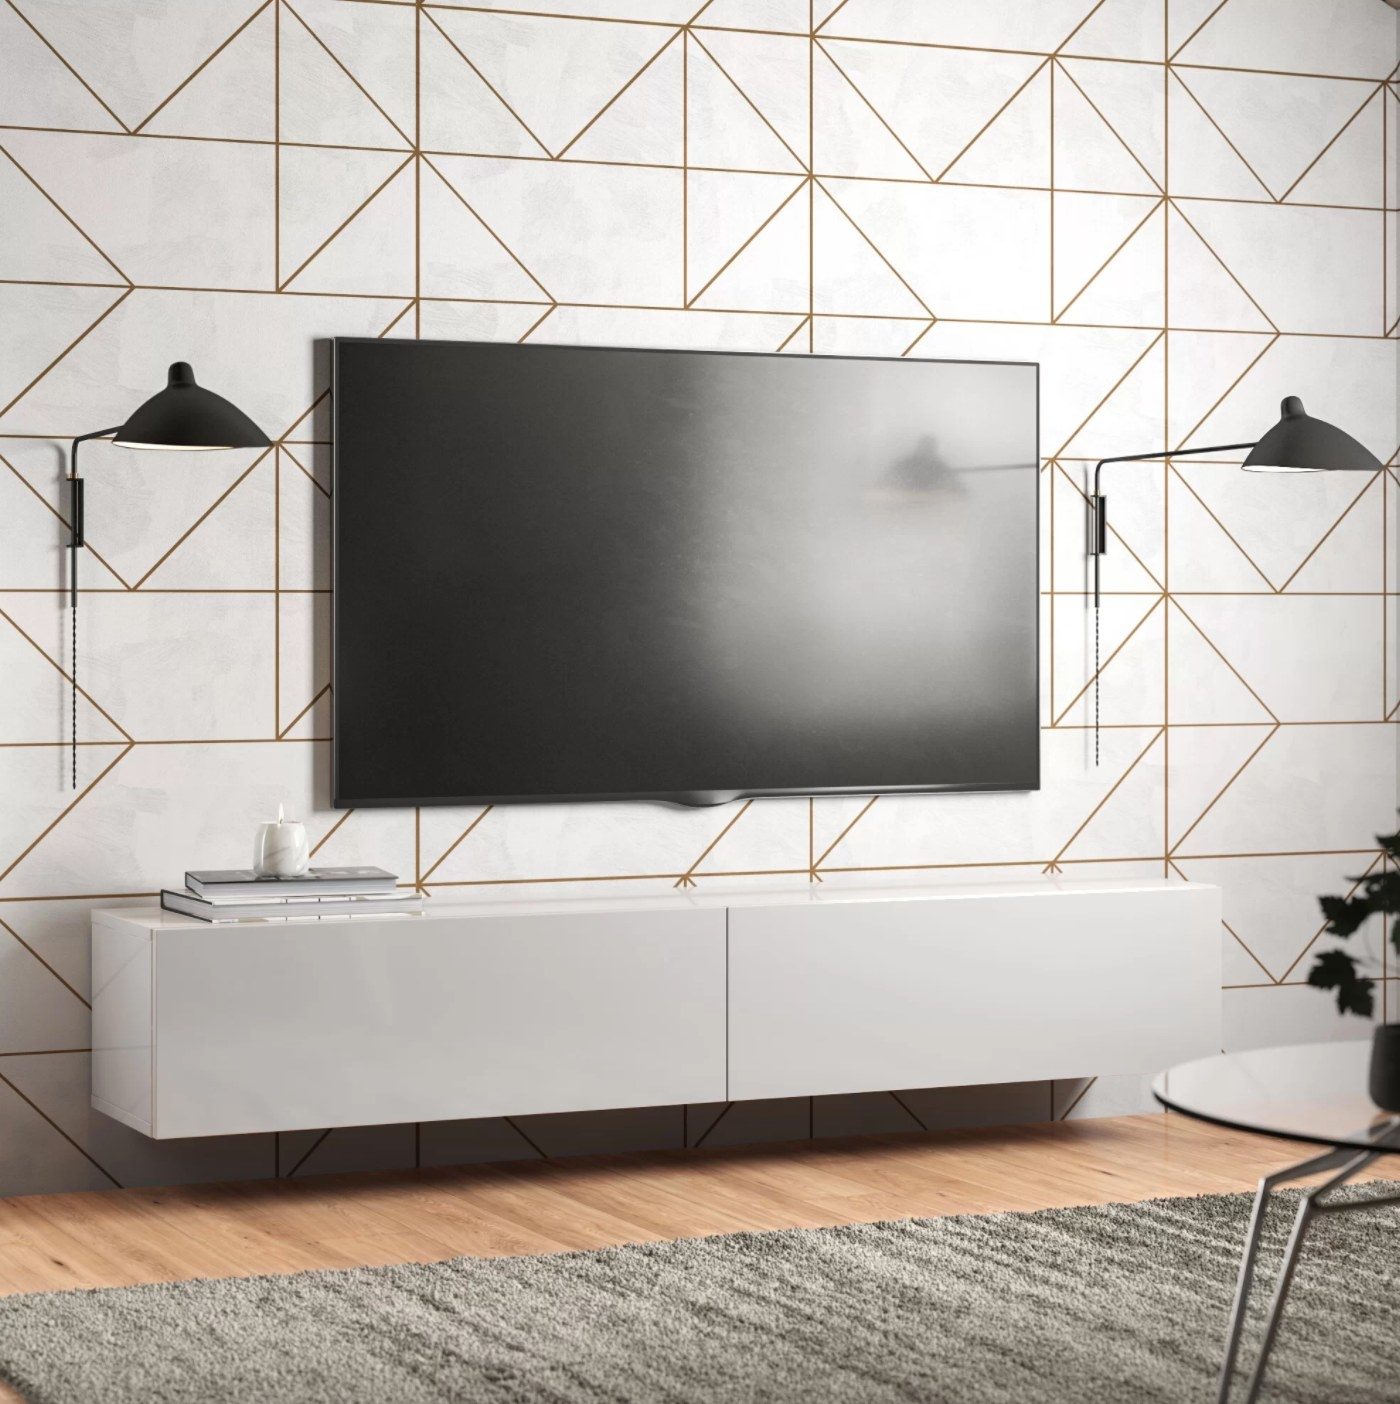 The TV stand in white